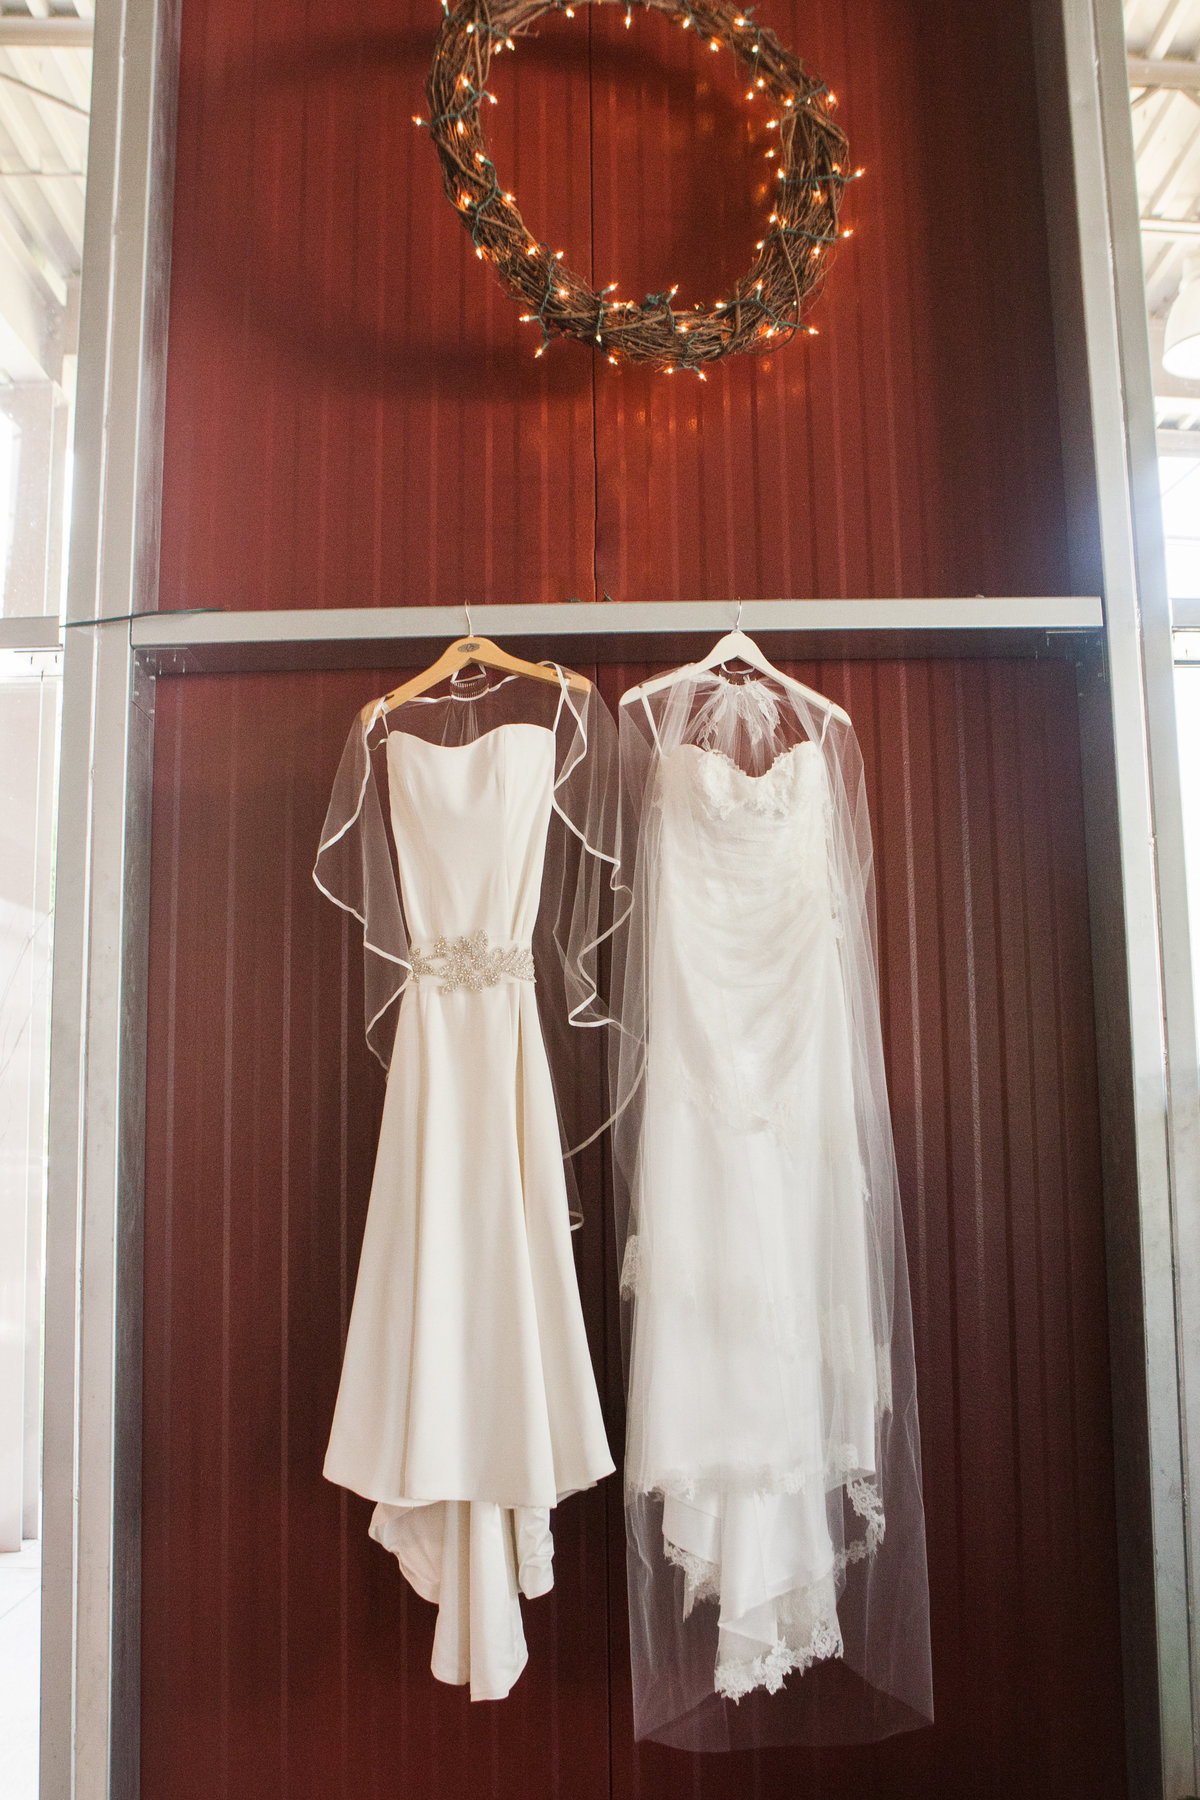 two wedding dresses hanging